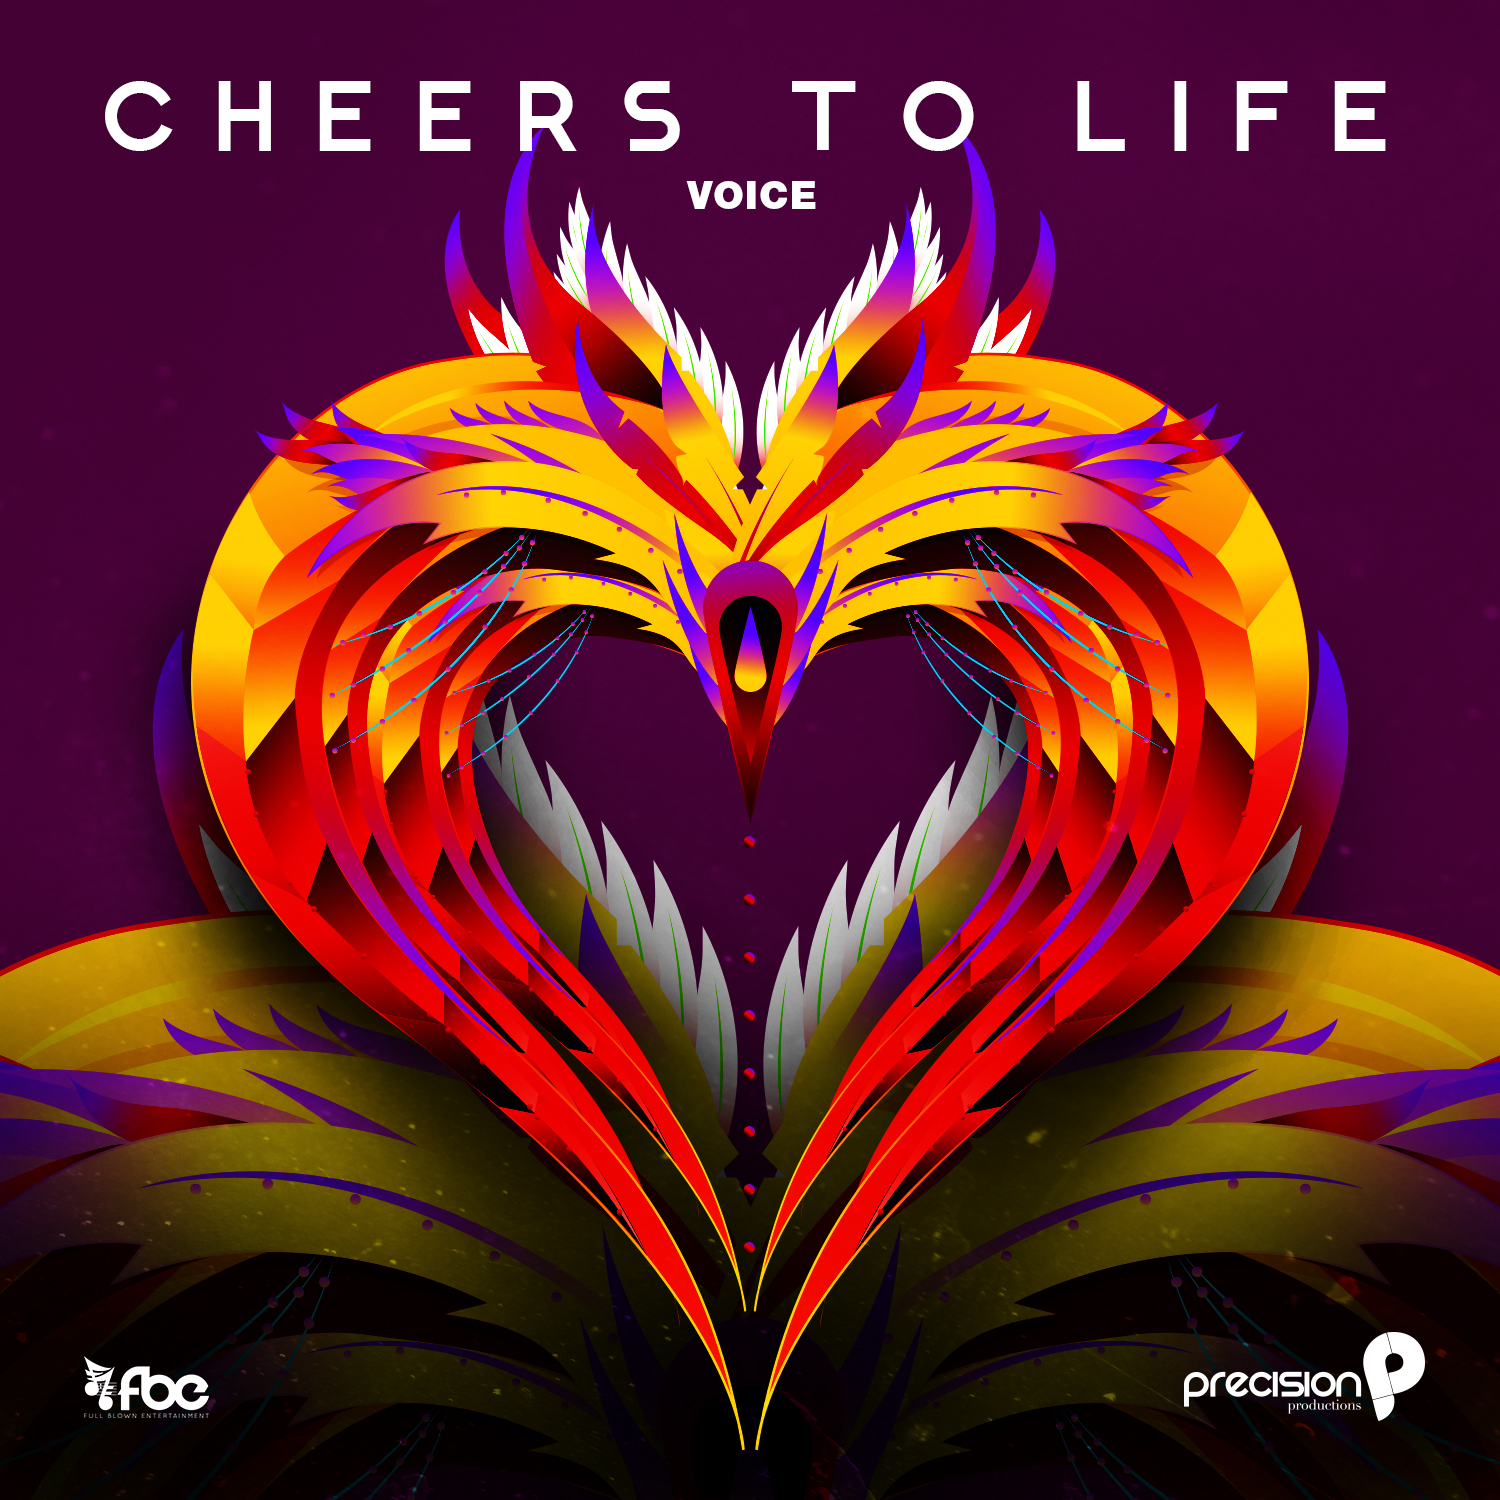 Voice - Cheers to Life